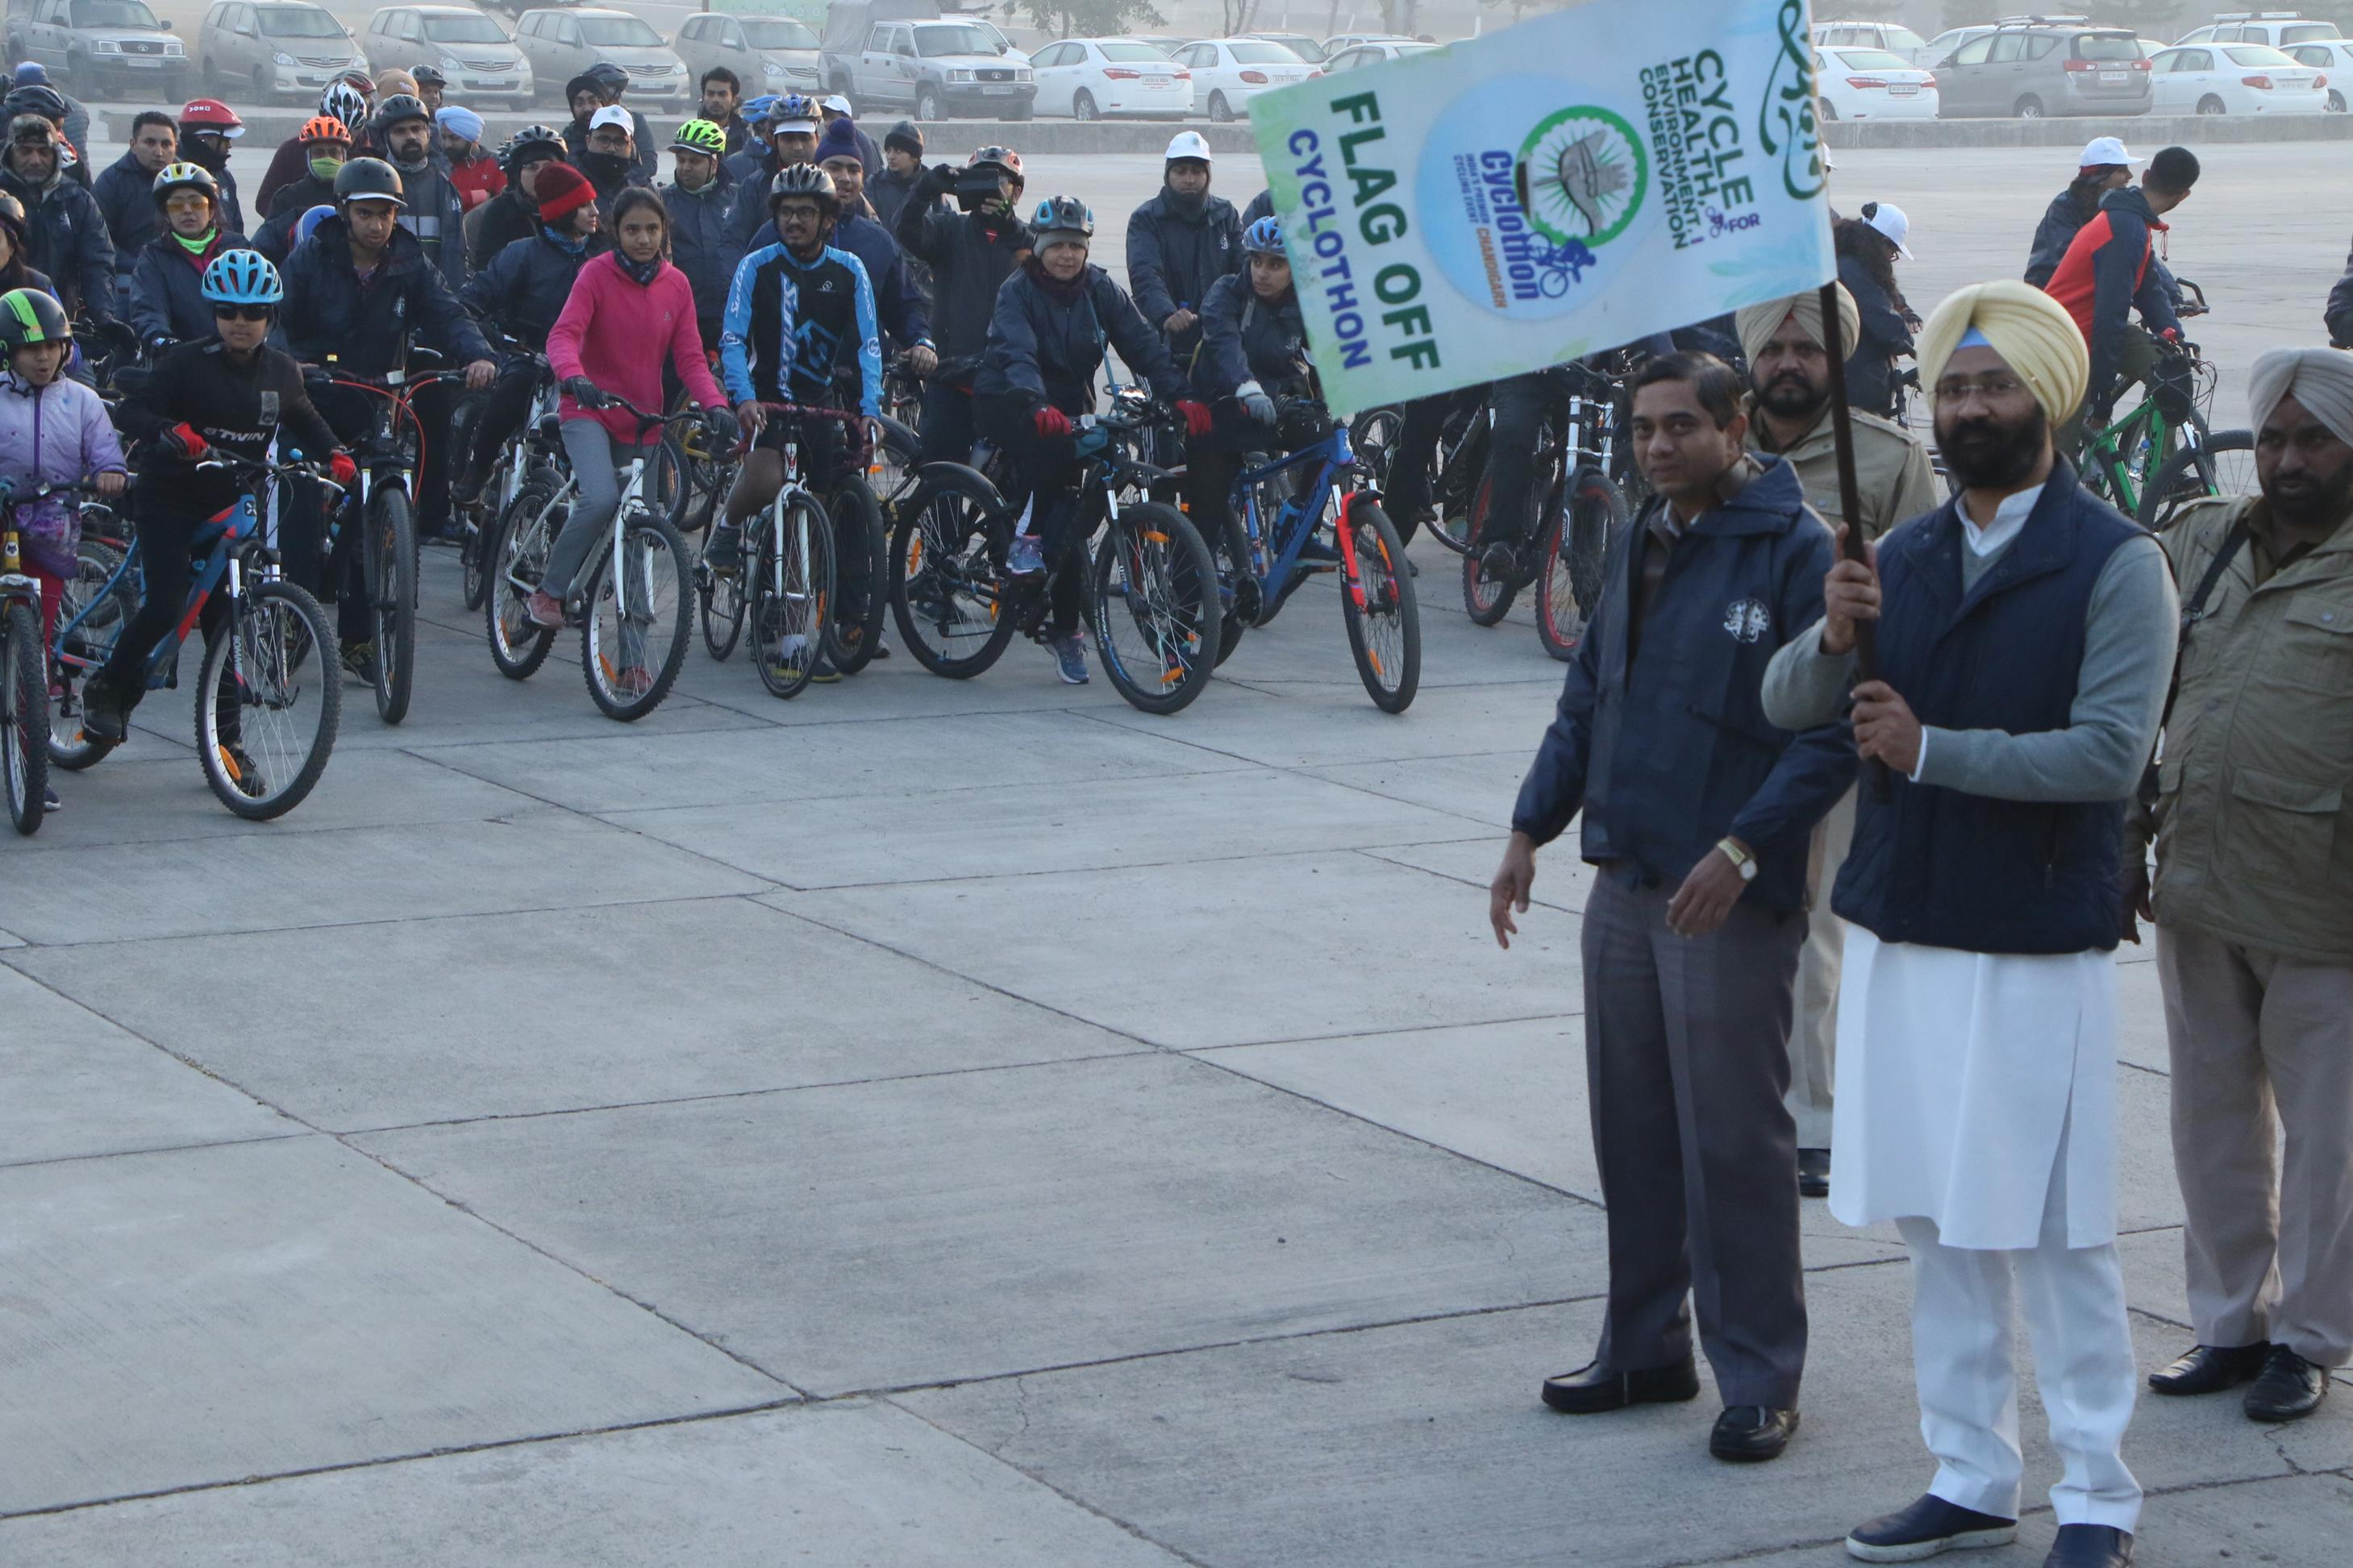 The cyclothon was flagged off by Mr. Parminder Singh Dhindsa,President, Cycling Federation of India from its start point Capitol Complex. Mr. Gagandeep Singh Sodhi, DeputyGM, Hindustan Petroleum Corporation,Chandigarh